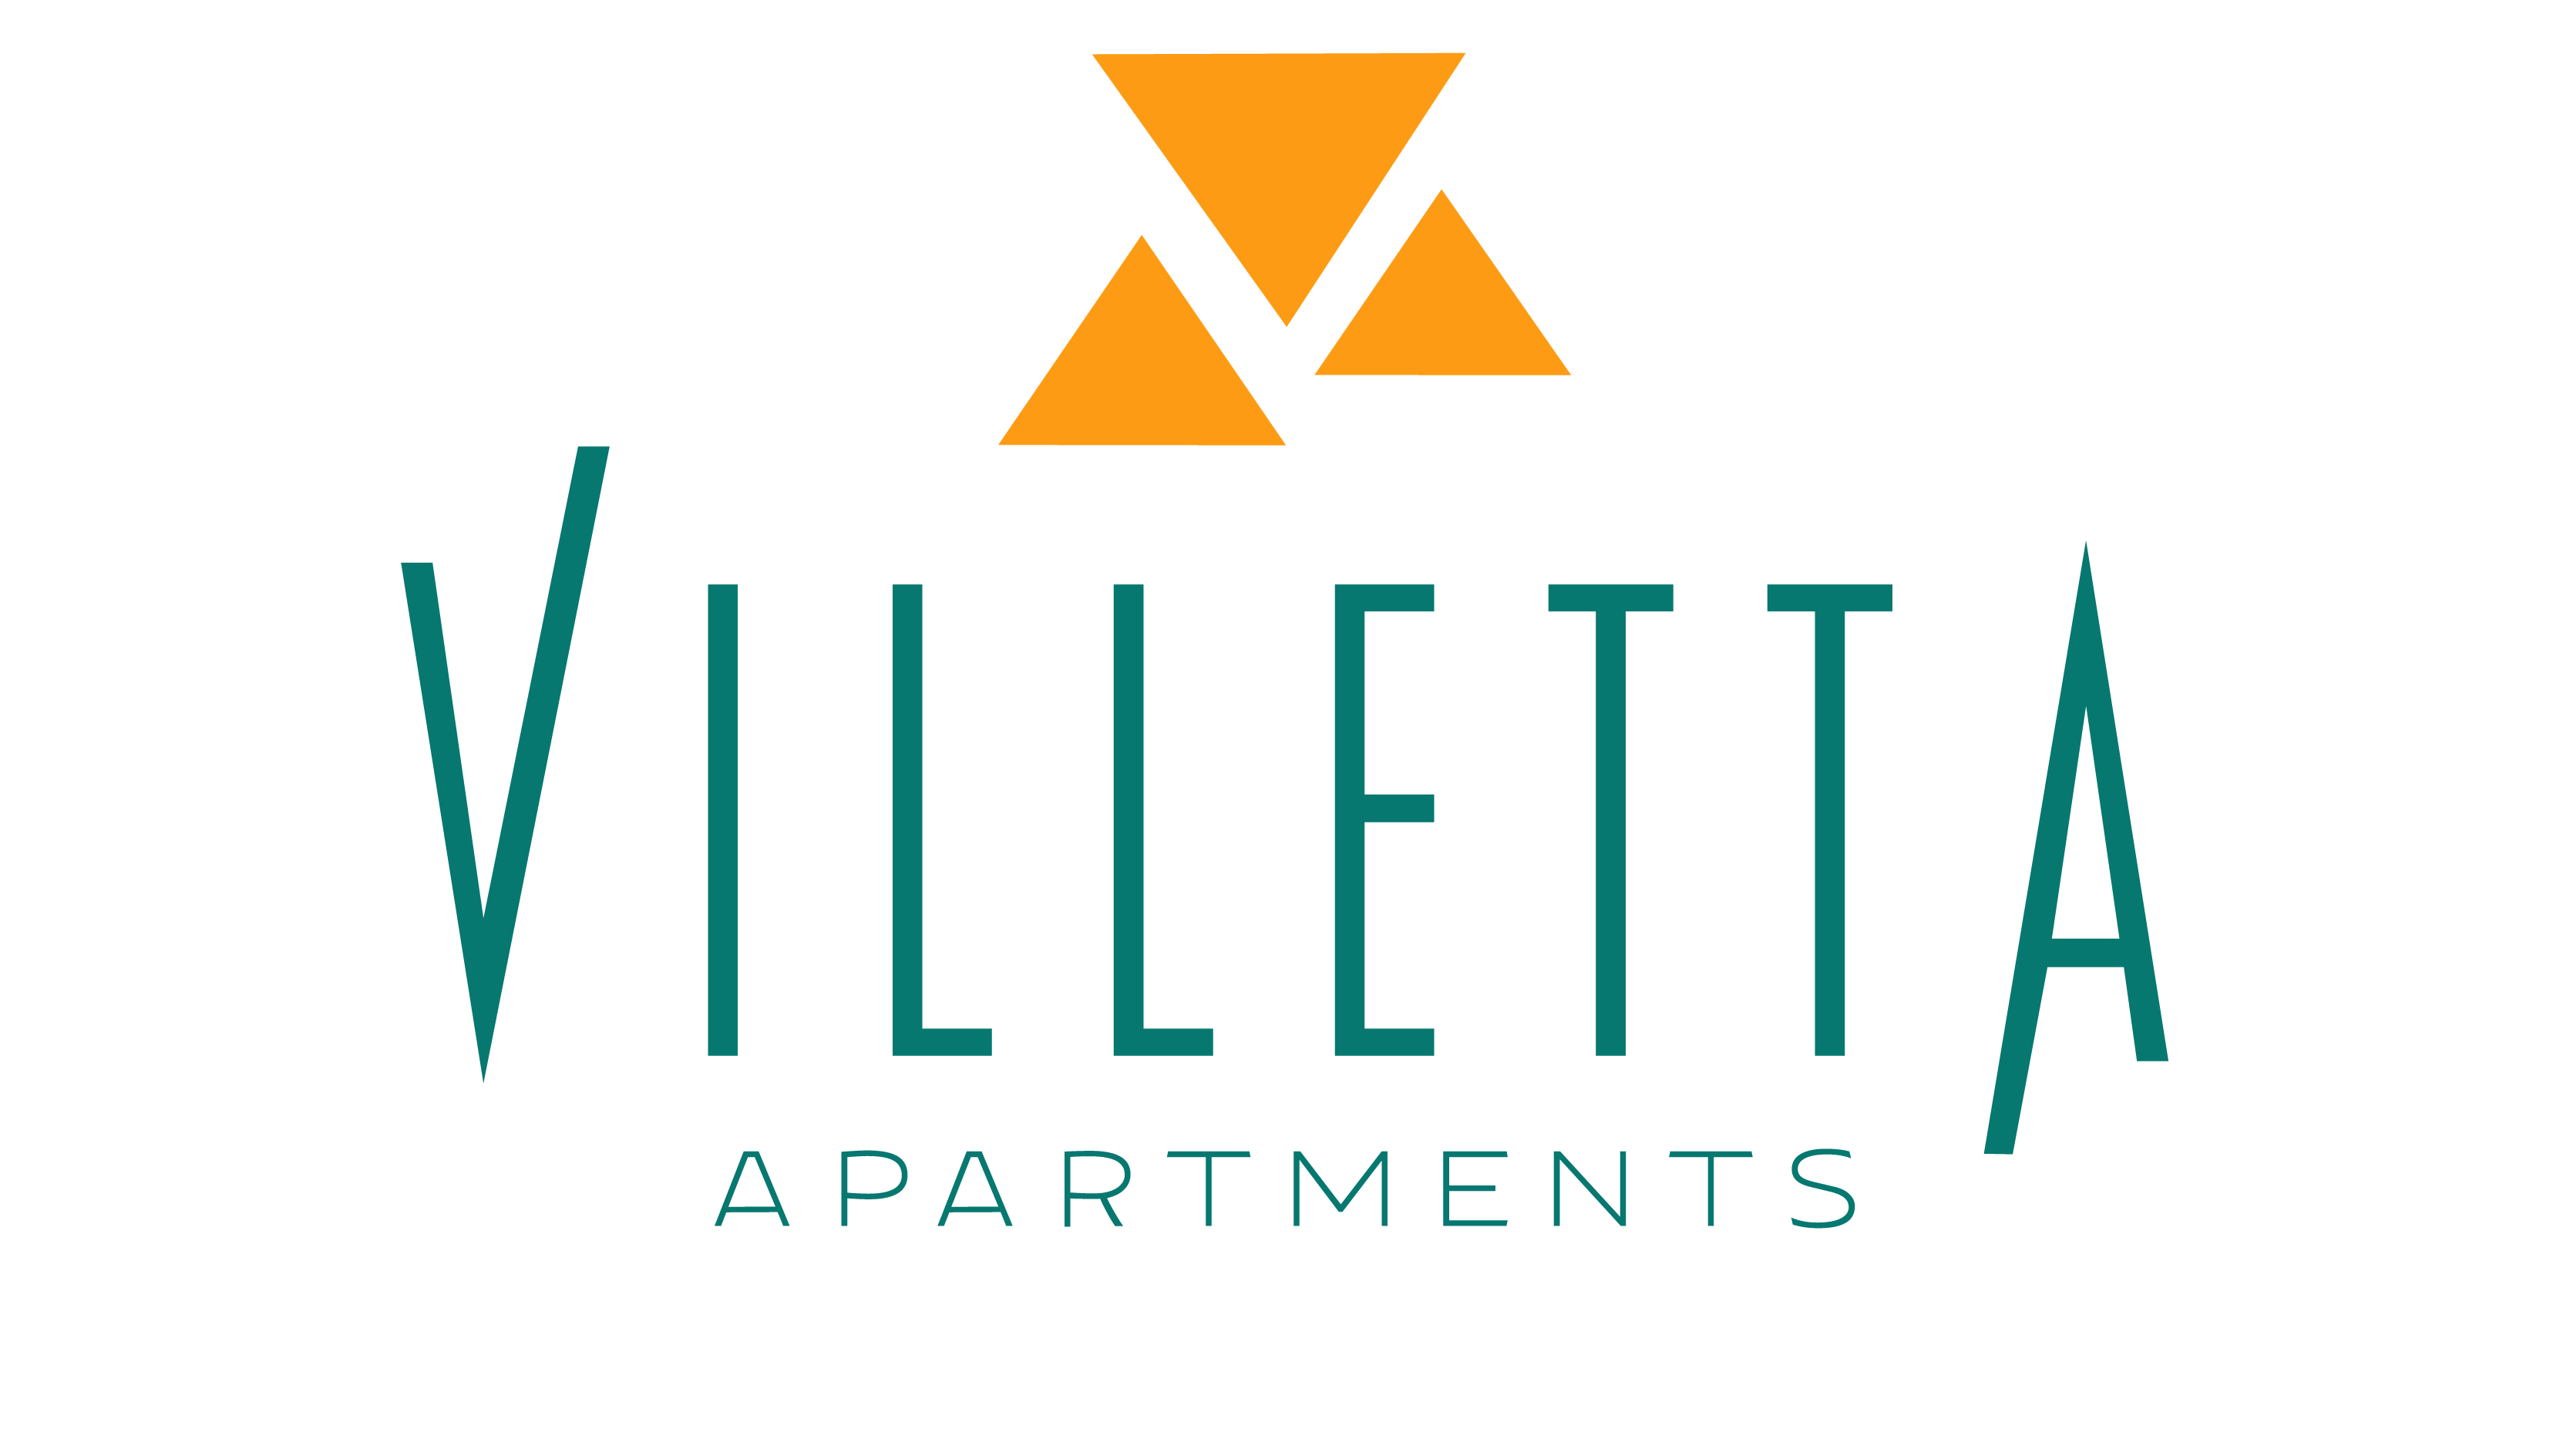 Villetta Apartments